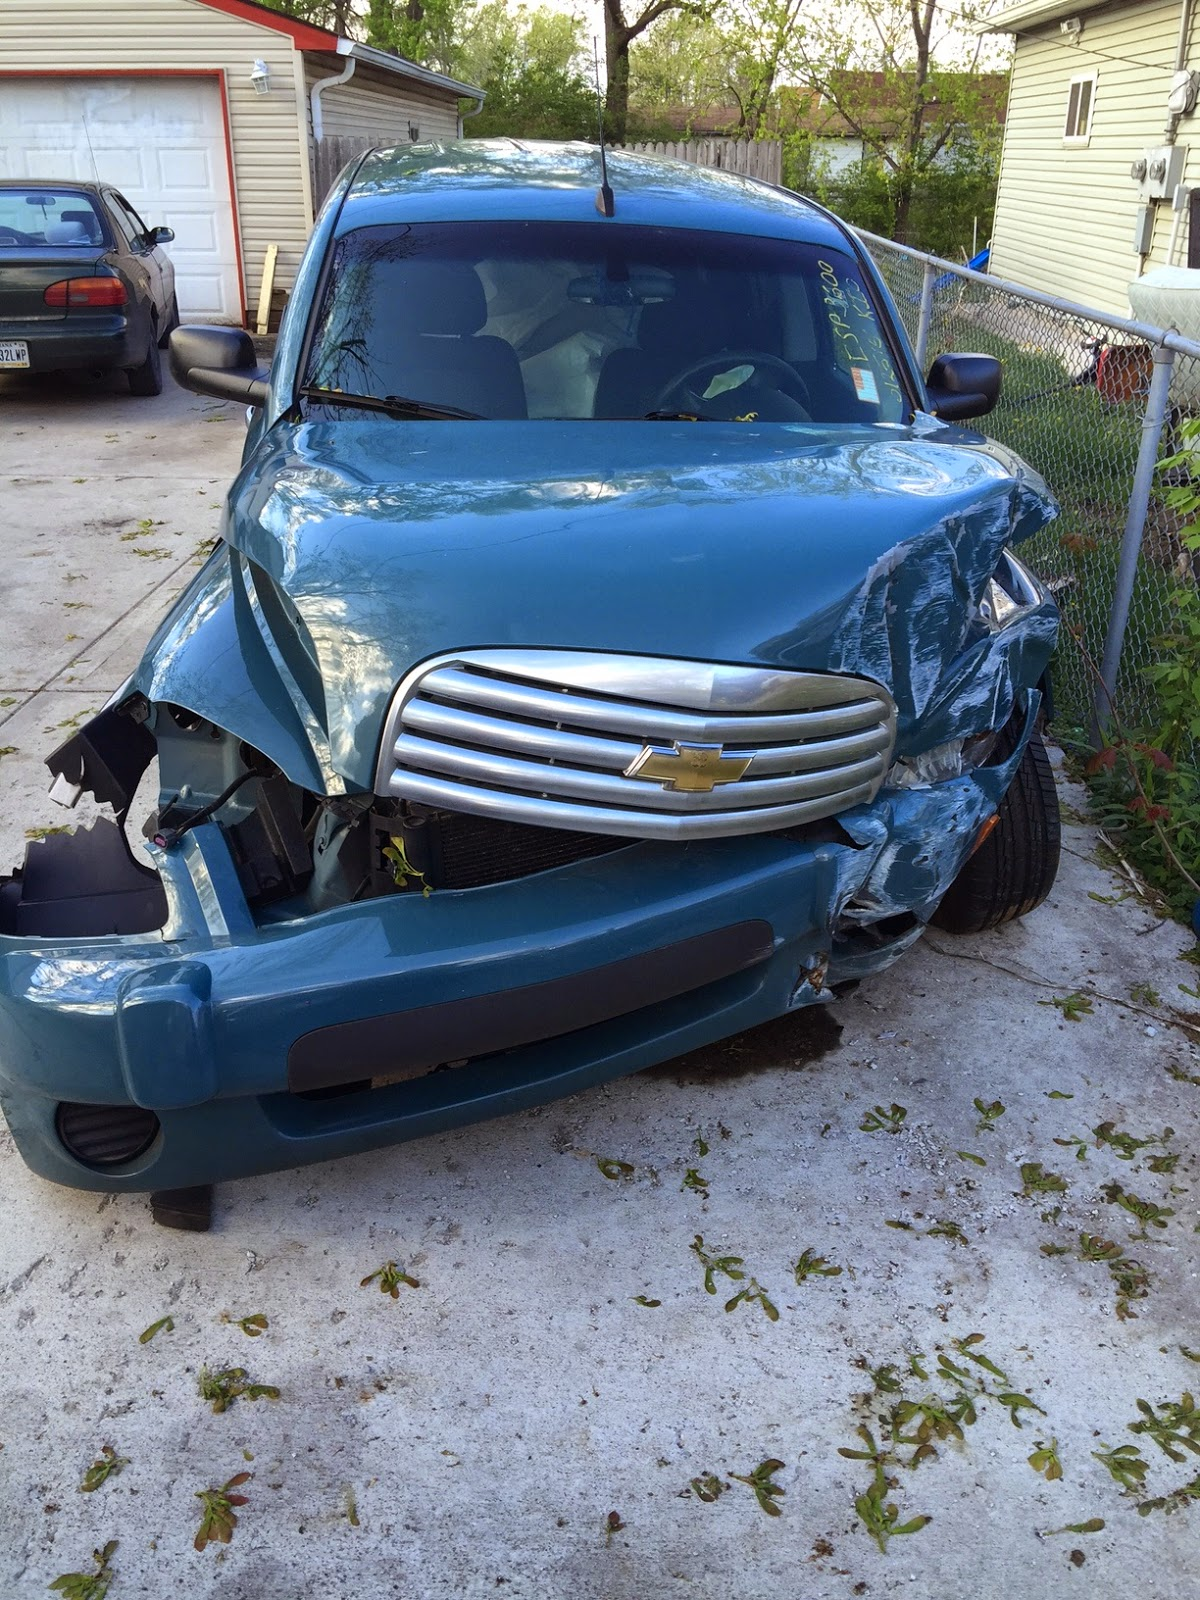 Sell totaled junk car Indianapolis